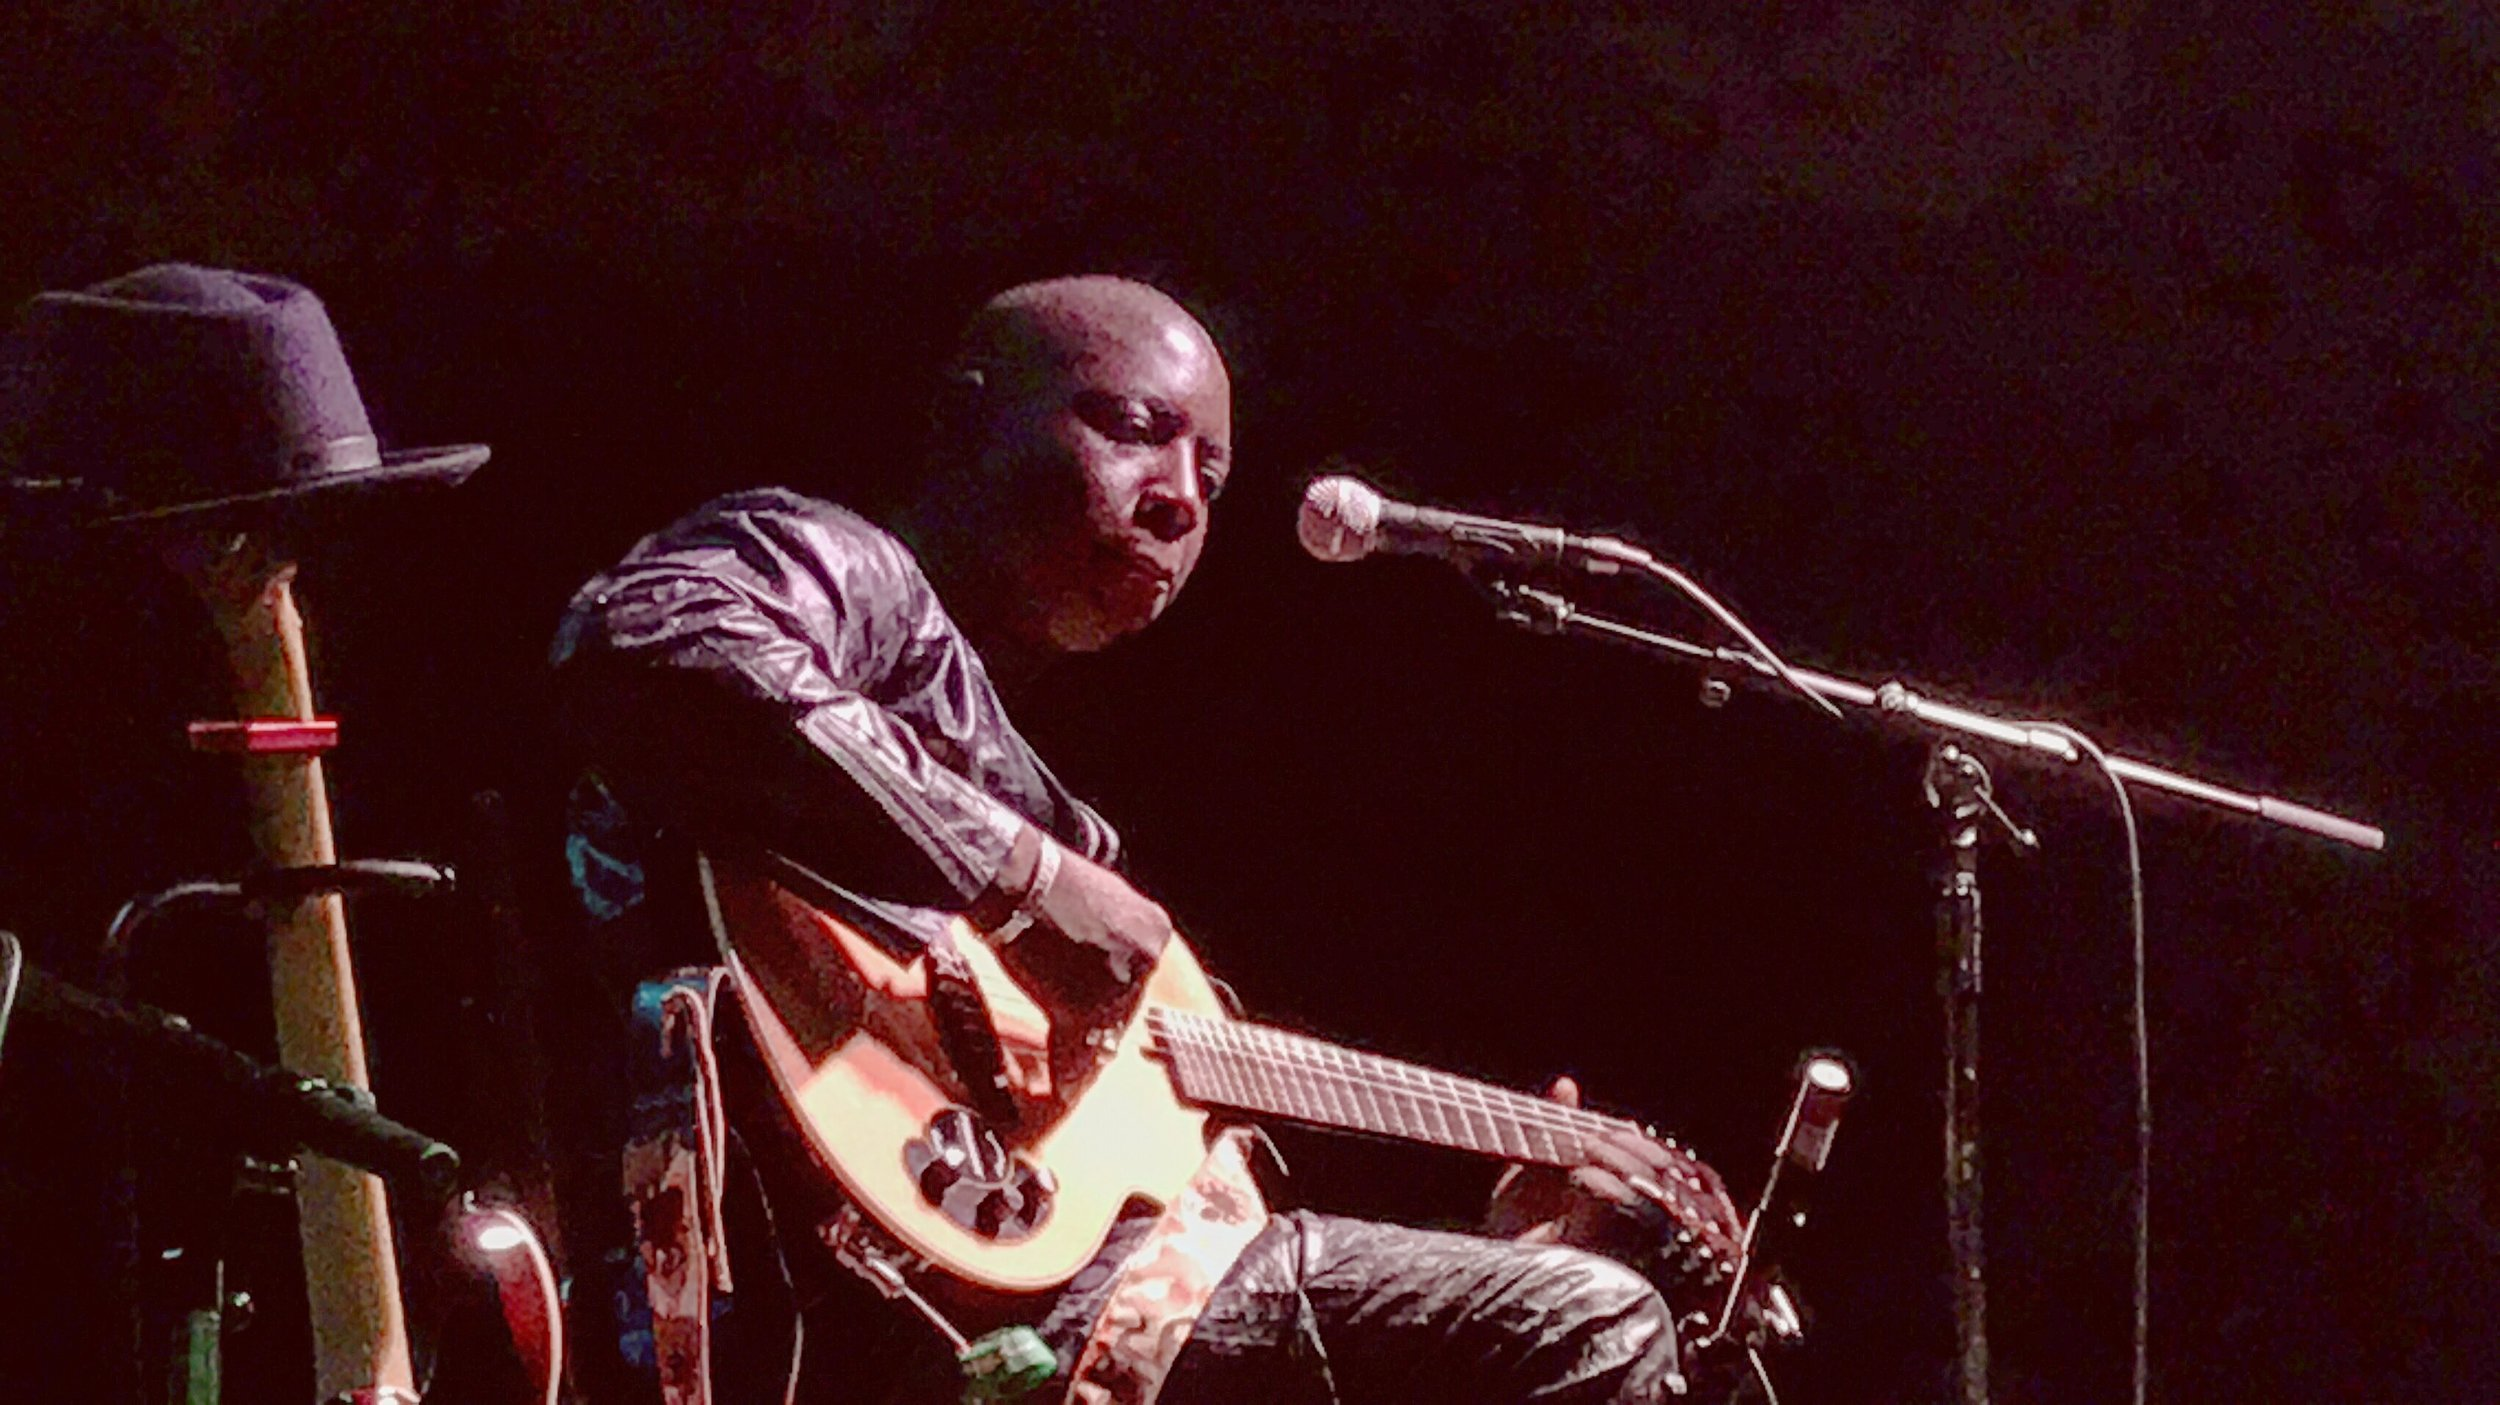 Vieux Farka Touré @ Nells Jazz & Blues   15.01.18   Photo: Sophie Darling